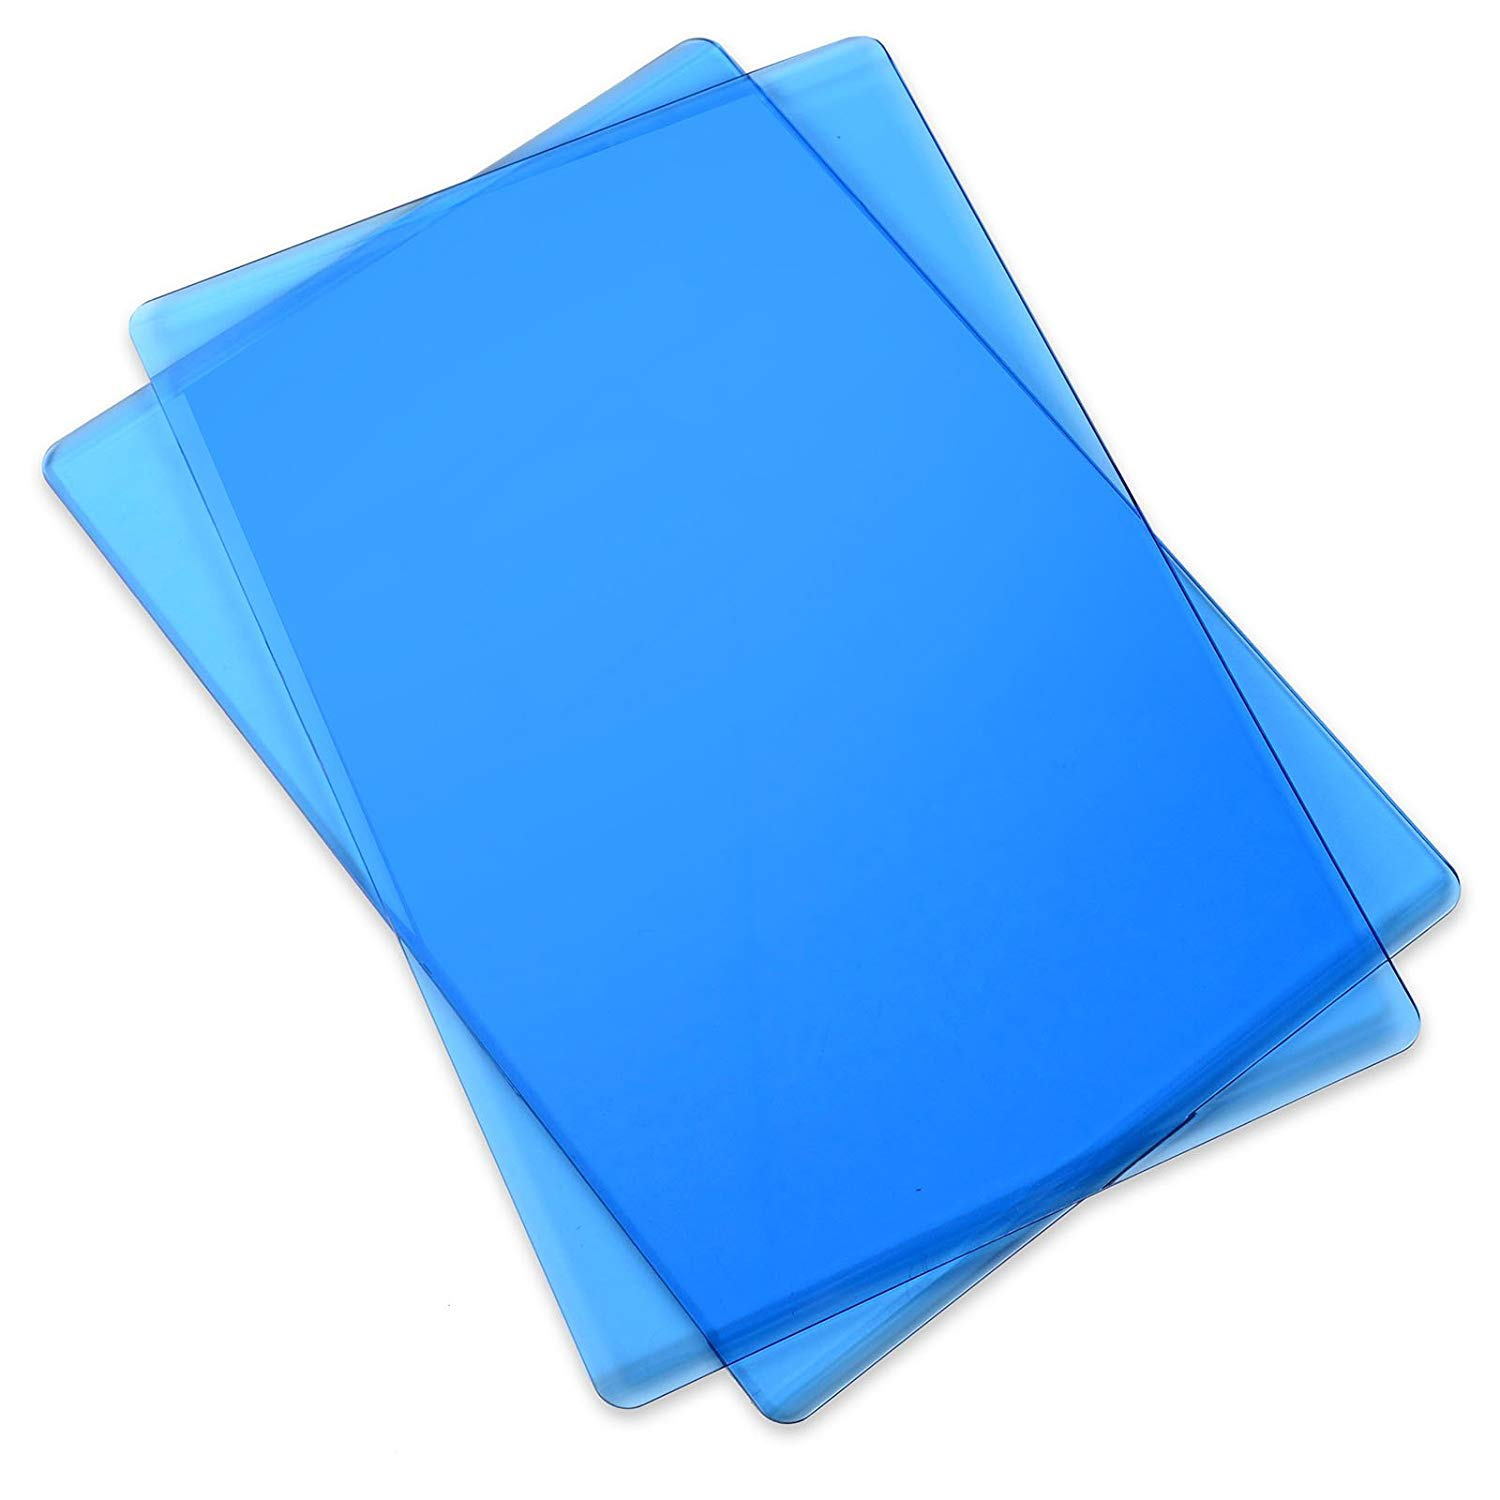 Accessory Standard Cutting Pads, 1 Pair, Blueberry, Deliciously colored cutting pads can be easily spotted on any work station By Sizzix